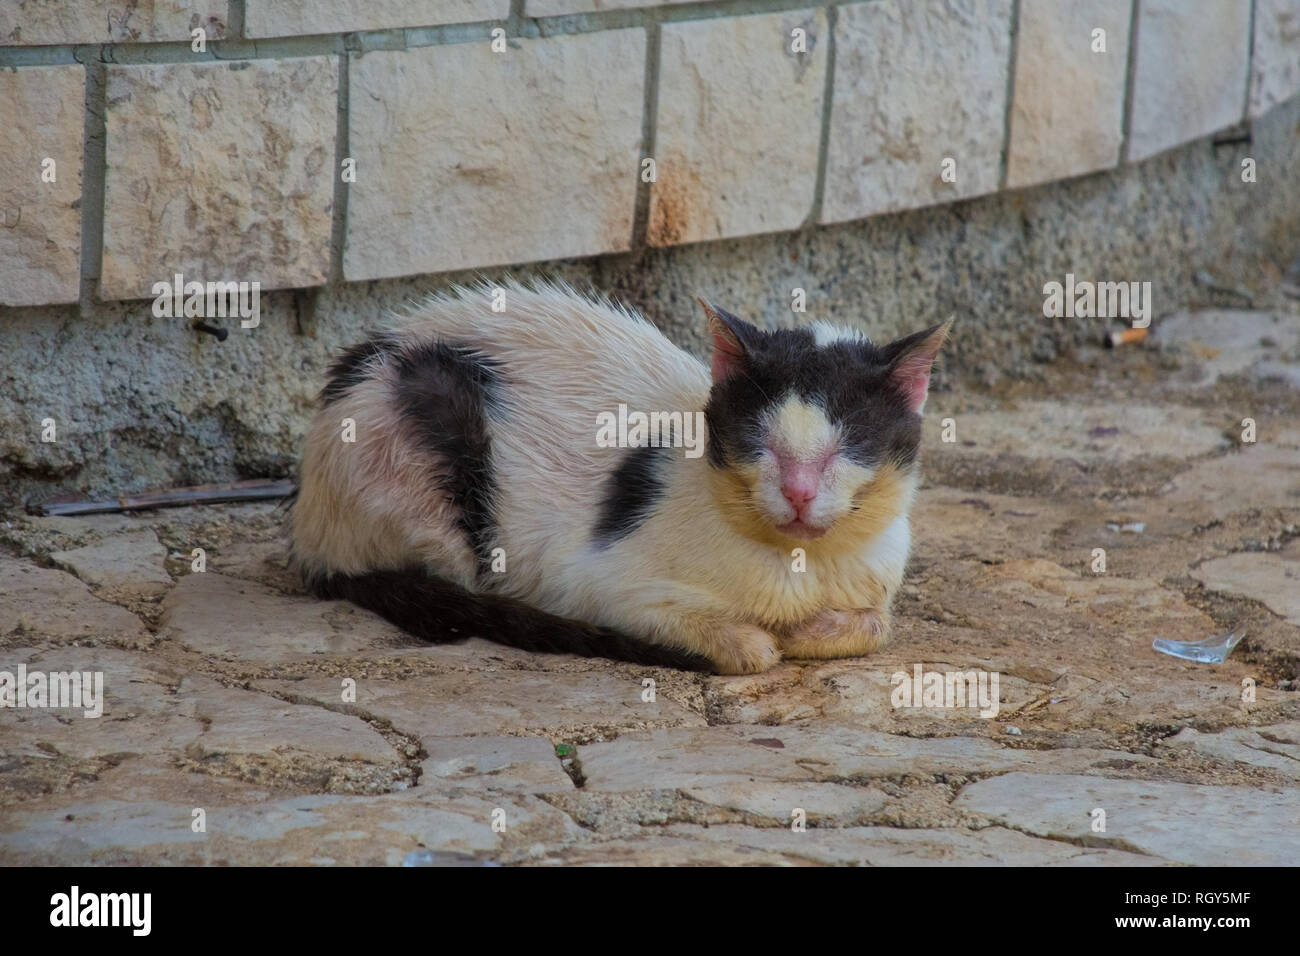 A sickly young black and white street cat in Istria, Croatia - Stock Image